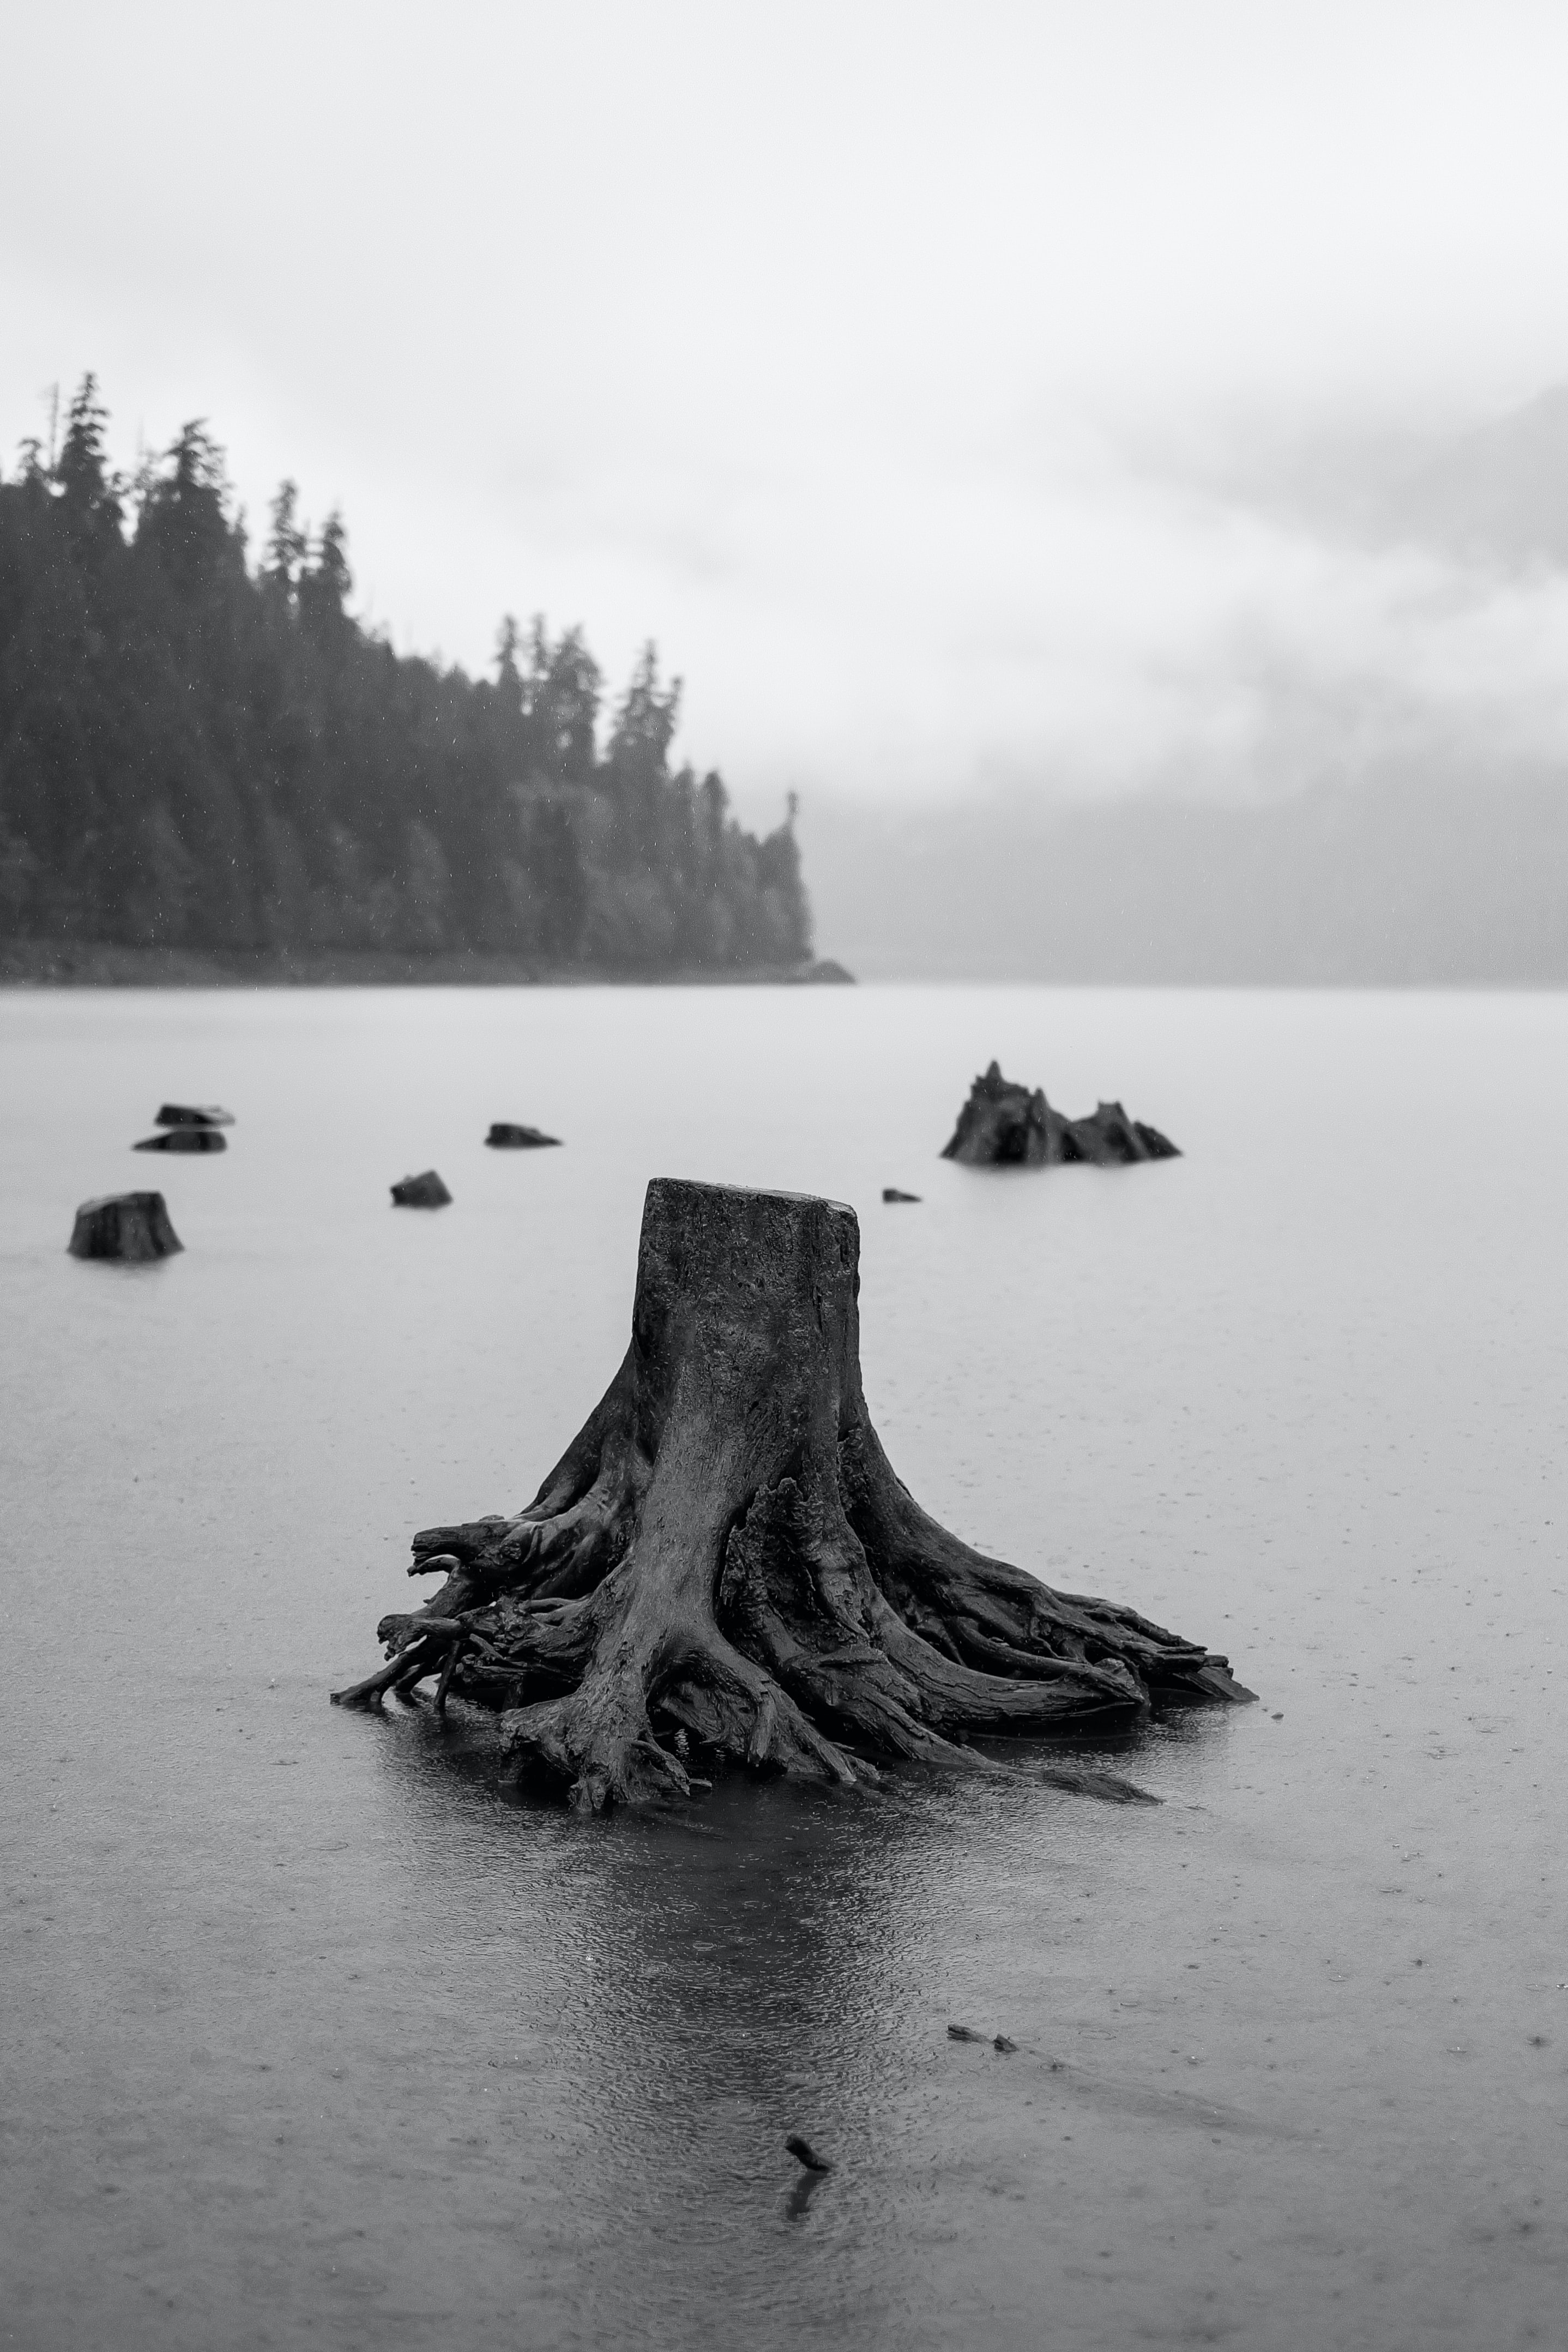 tree floating on body of water